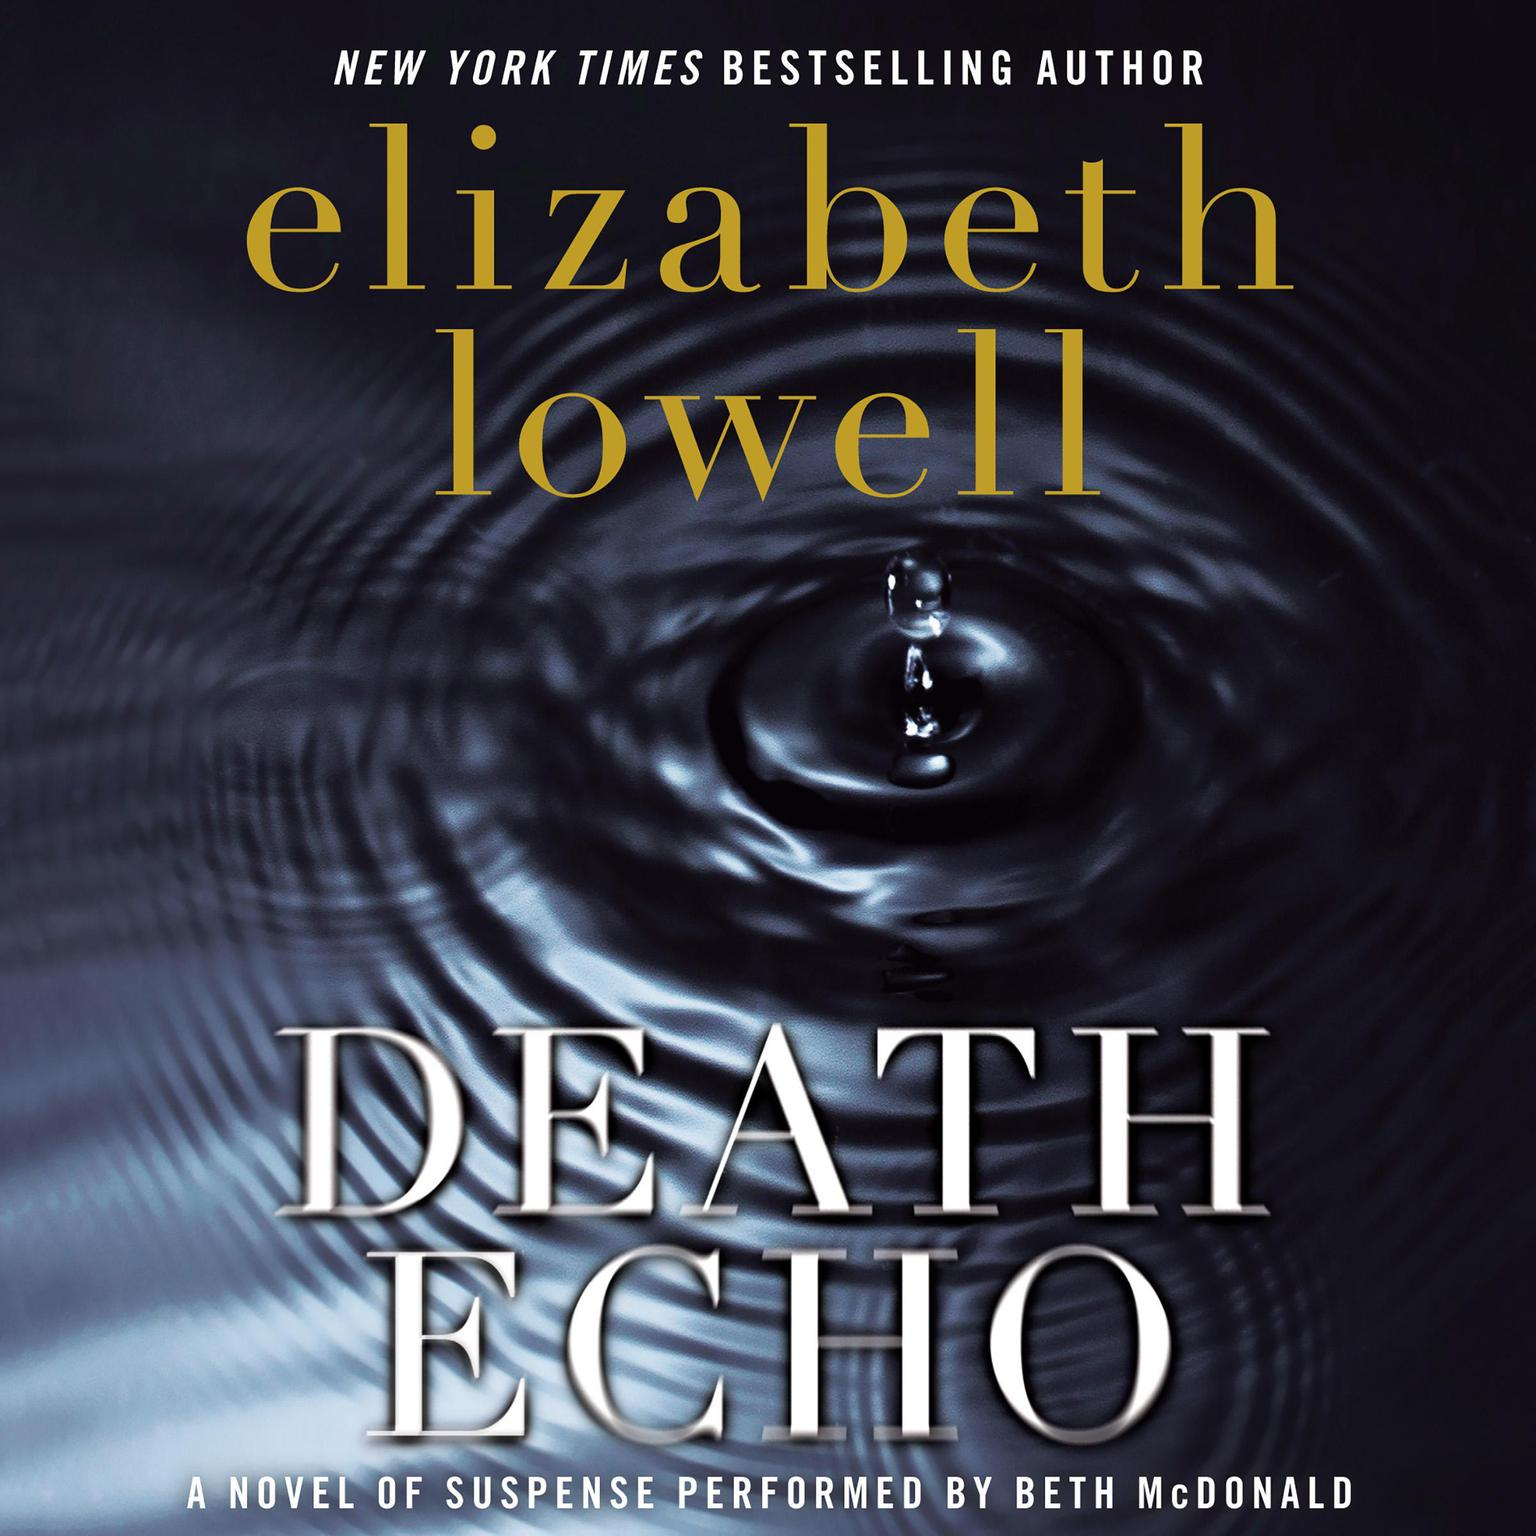 Printable Death Echo Audiobook Cover Art